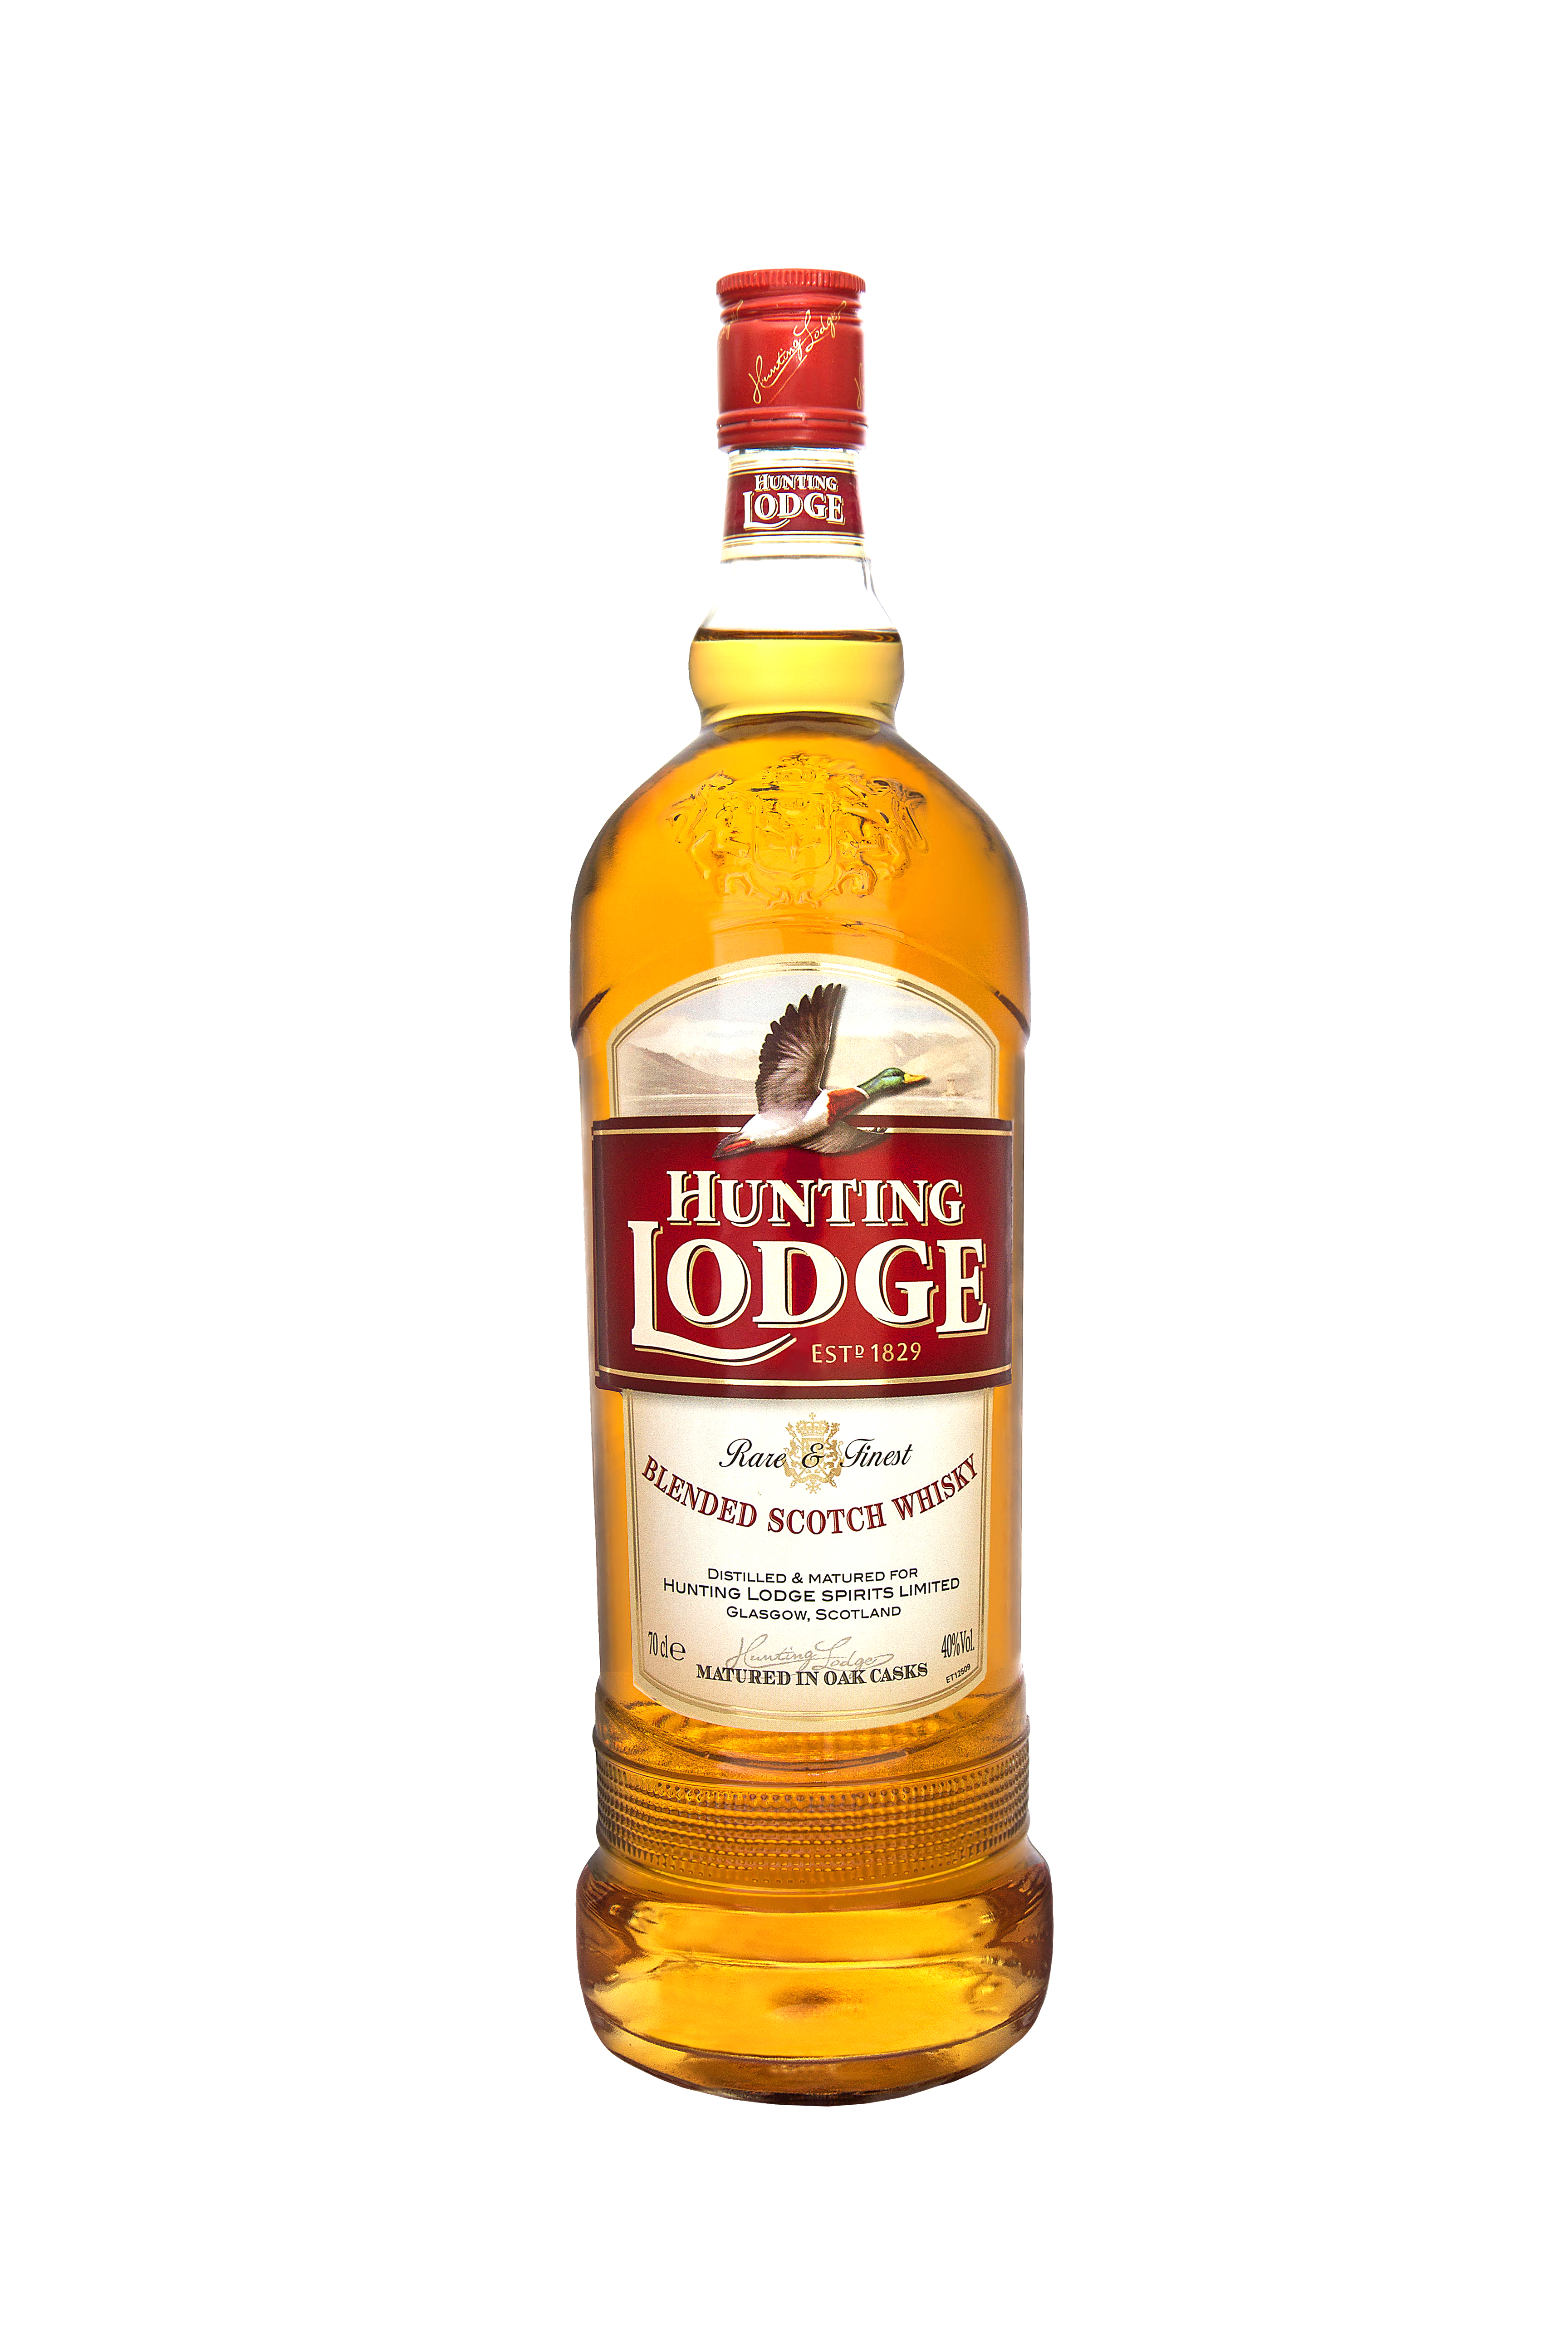 Hunting Lodge Blended Scotch Whiskey 3 y.o.